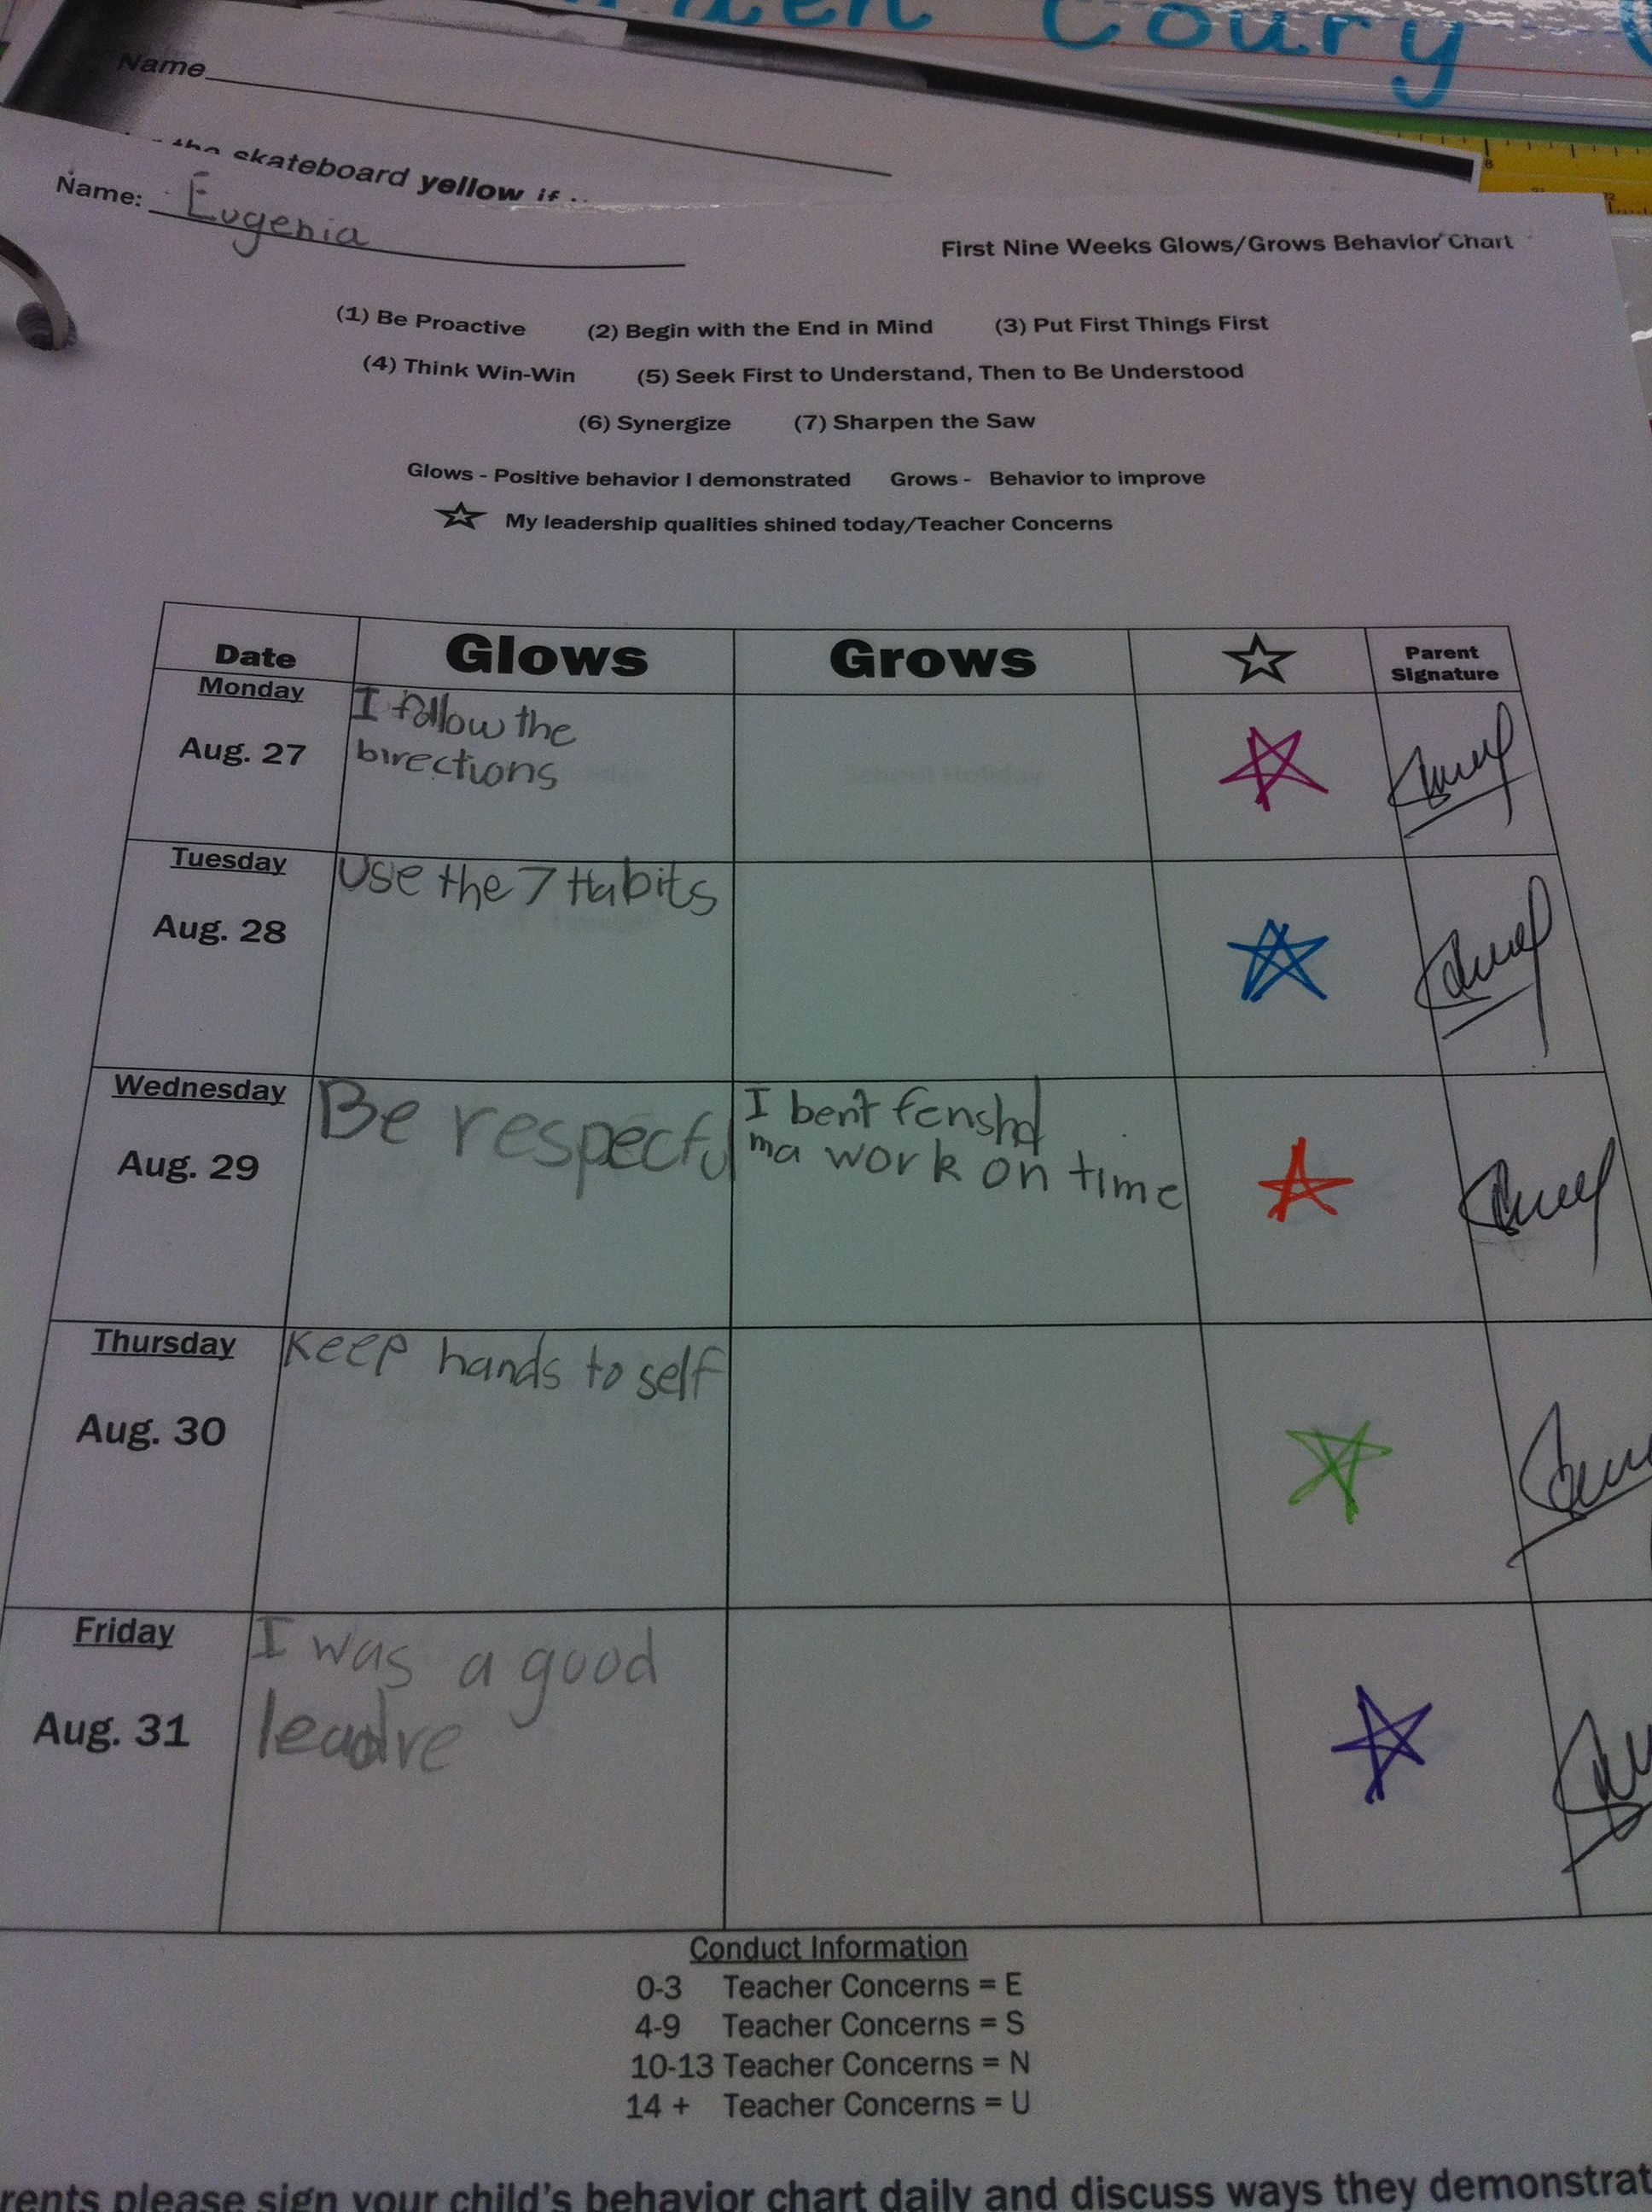 Stone oak 7 habits leadership notebook 2nd grade | 7 ...